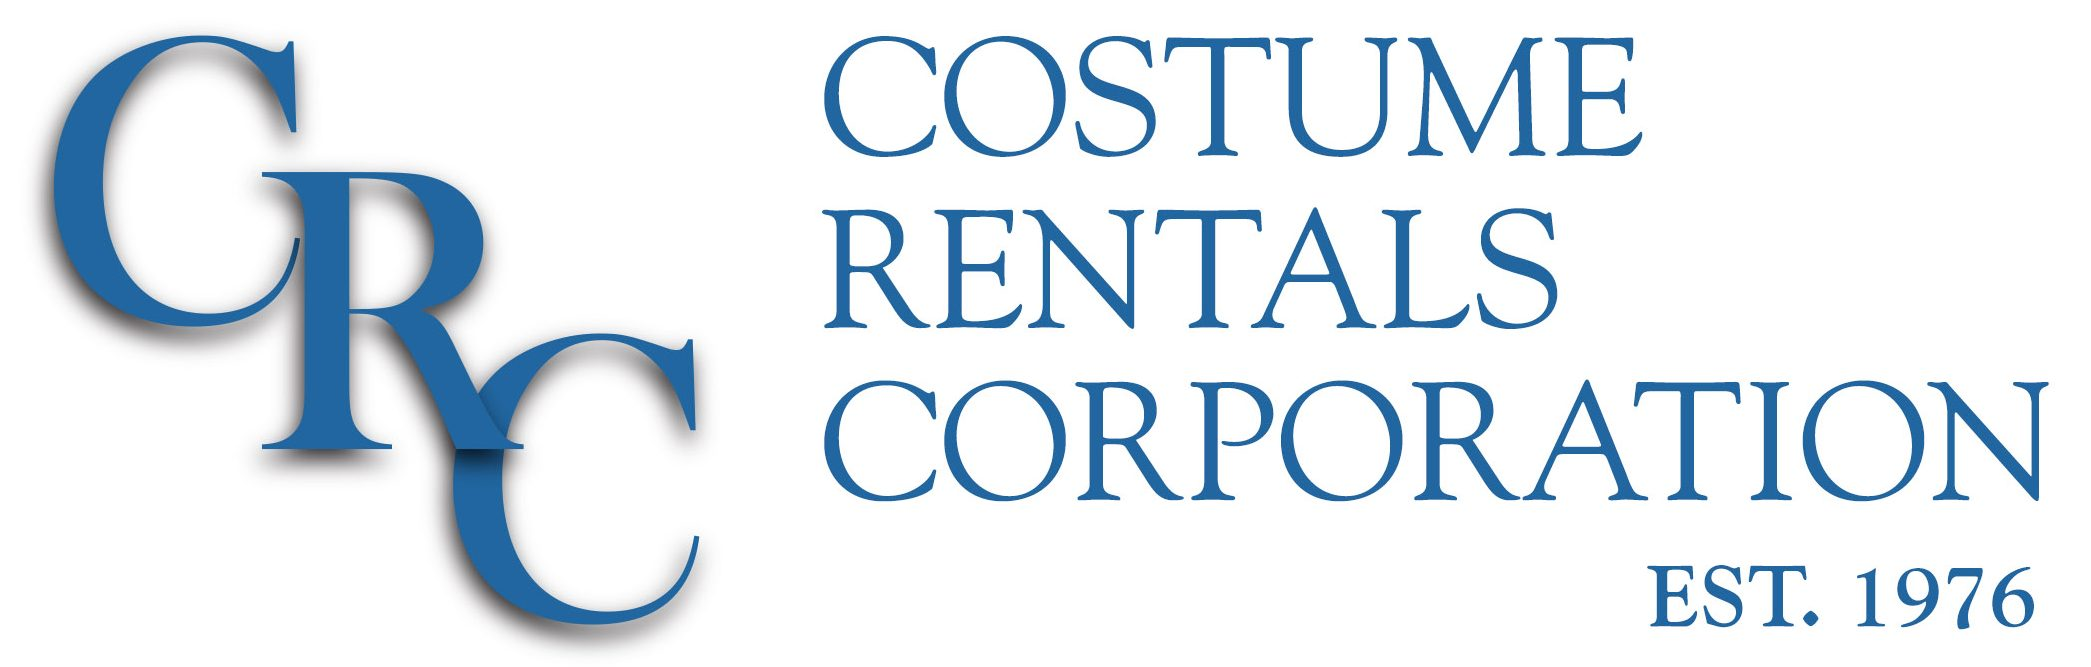 Costume Rental Corporation, Burbank, CA